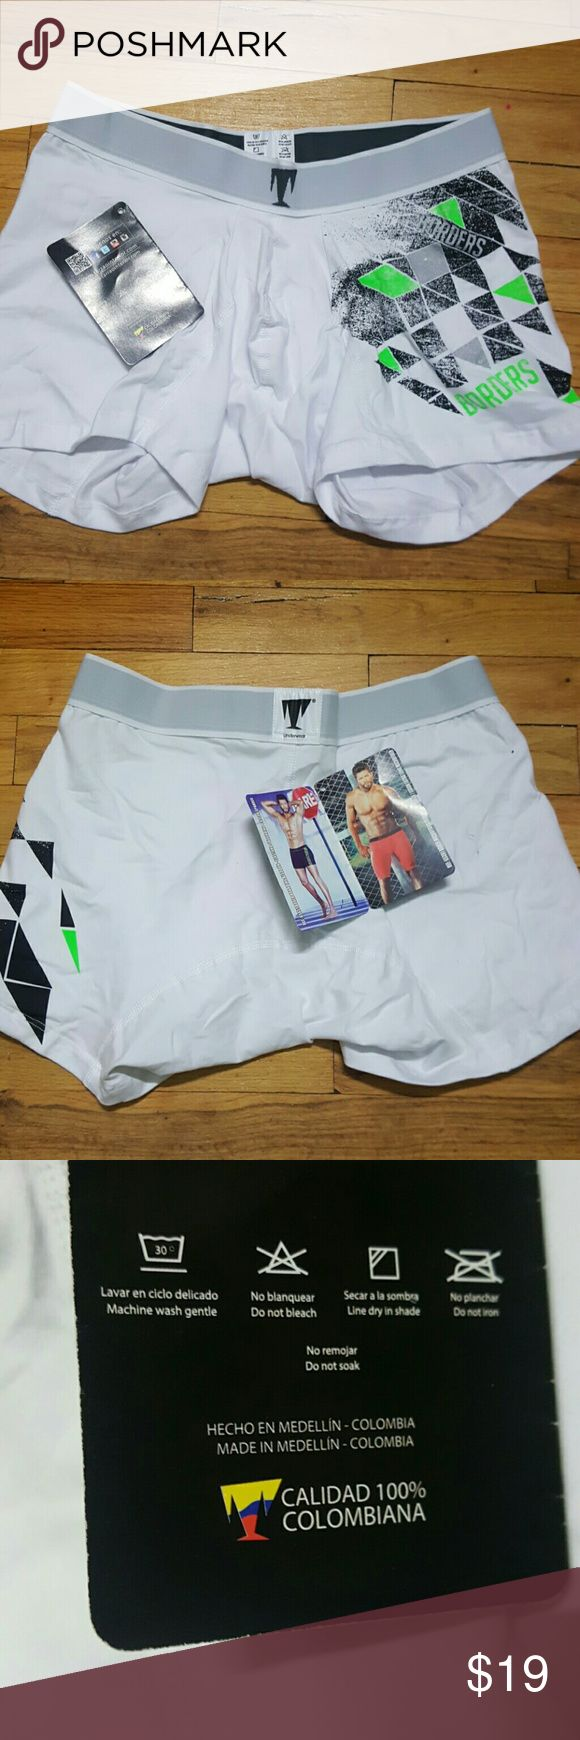 MADE IN COLOMBIAN MEN UNDERWEAR BOXERS MADE IN COLOMBIAN MEN UNDERWEAR BOXERS  FAMOUS FOR THEIR GREAT QUALITY  IN UNDERWEAR.  THIS QUALITY WILL LAST IN GREAT CONDITIONS FOR 4 TO 5 YEARS .. Underwear & Socks Boxers